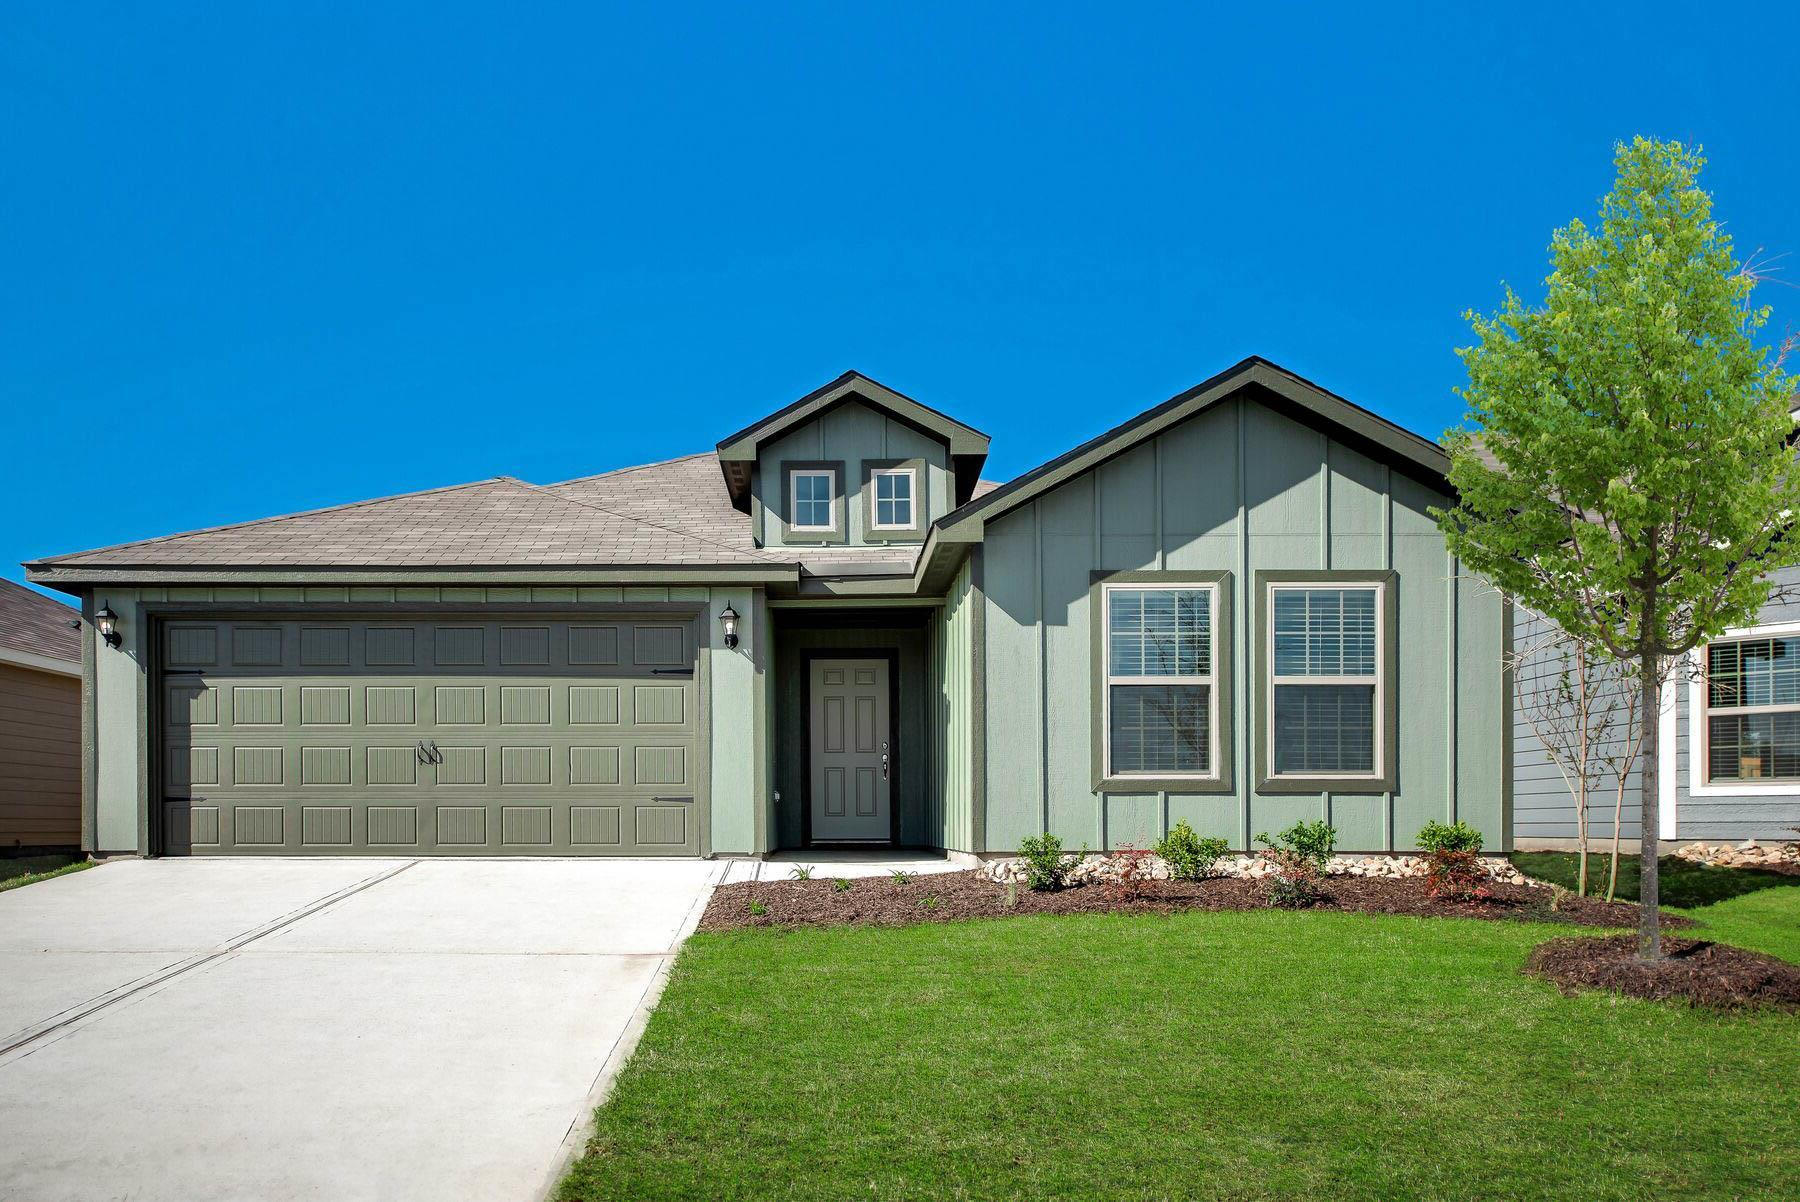 The Sabine by LGI Homes:The Sabine floor plan by LGI Homes.